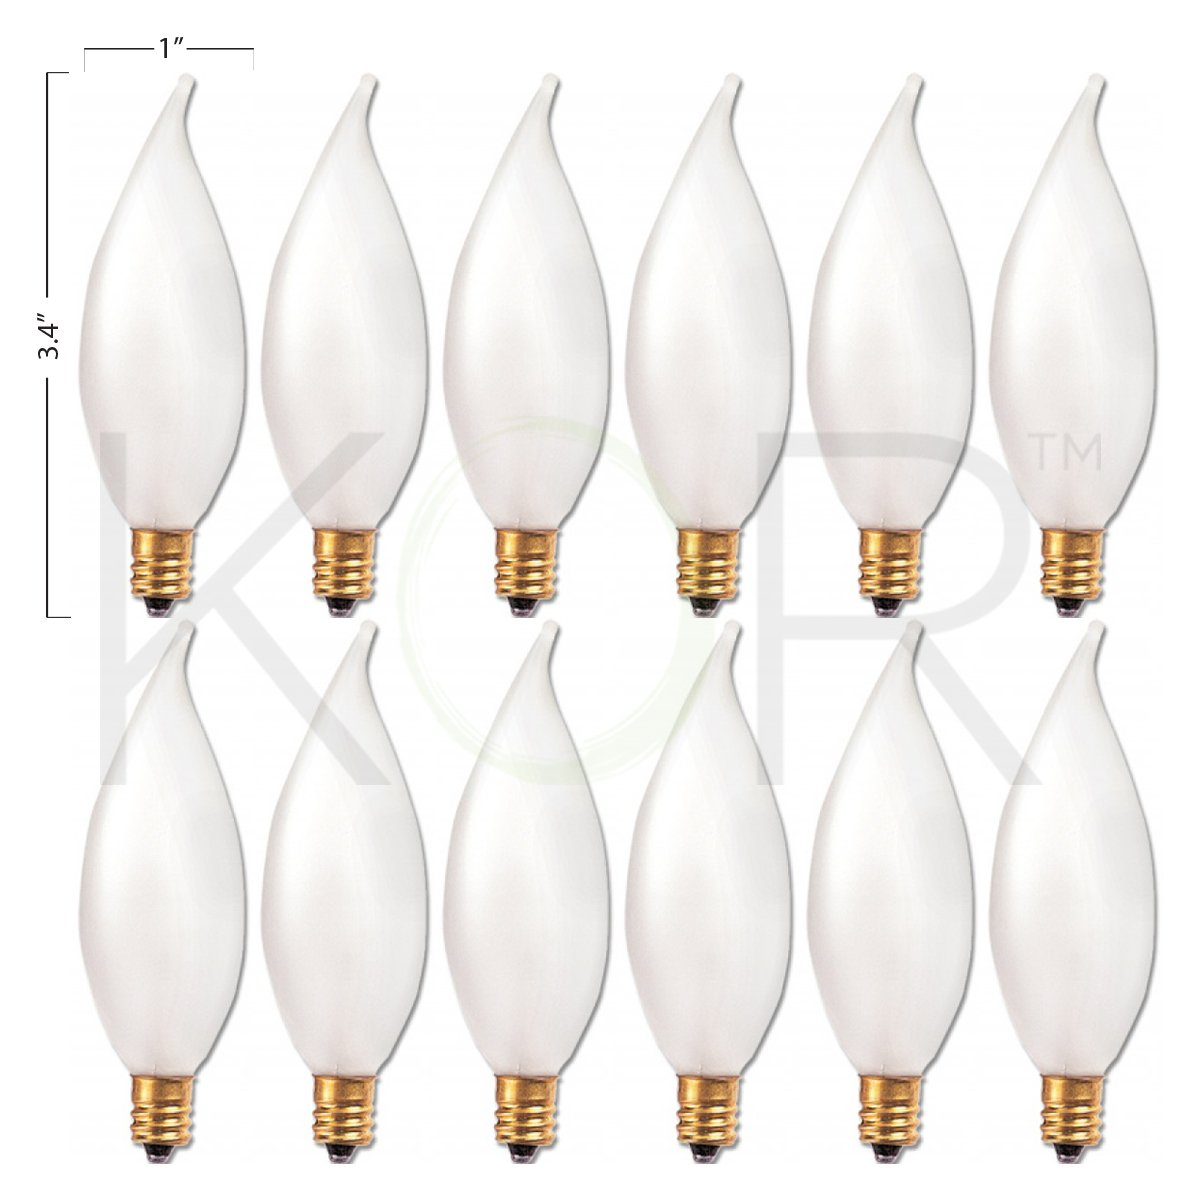 12 Pack 25 Watt Frosted Flame Shaped Incandescent Light Bulb Candelabra Base Bulbs Com